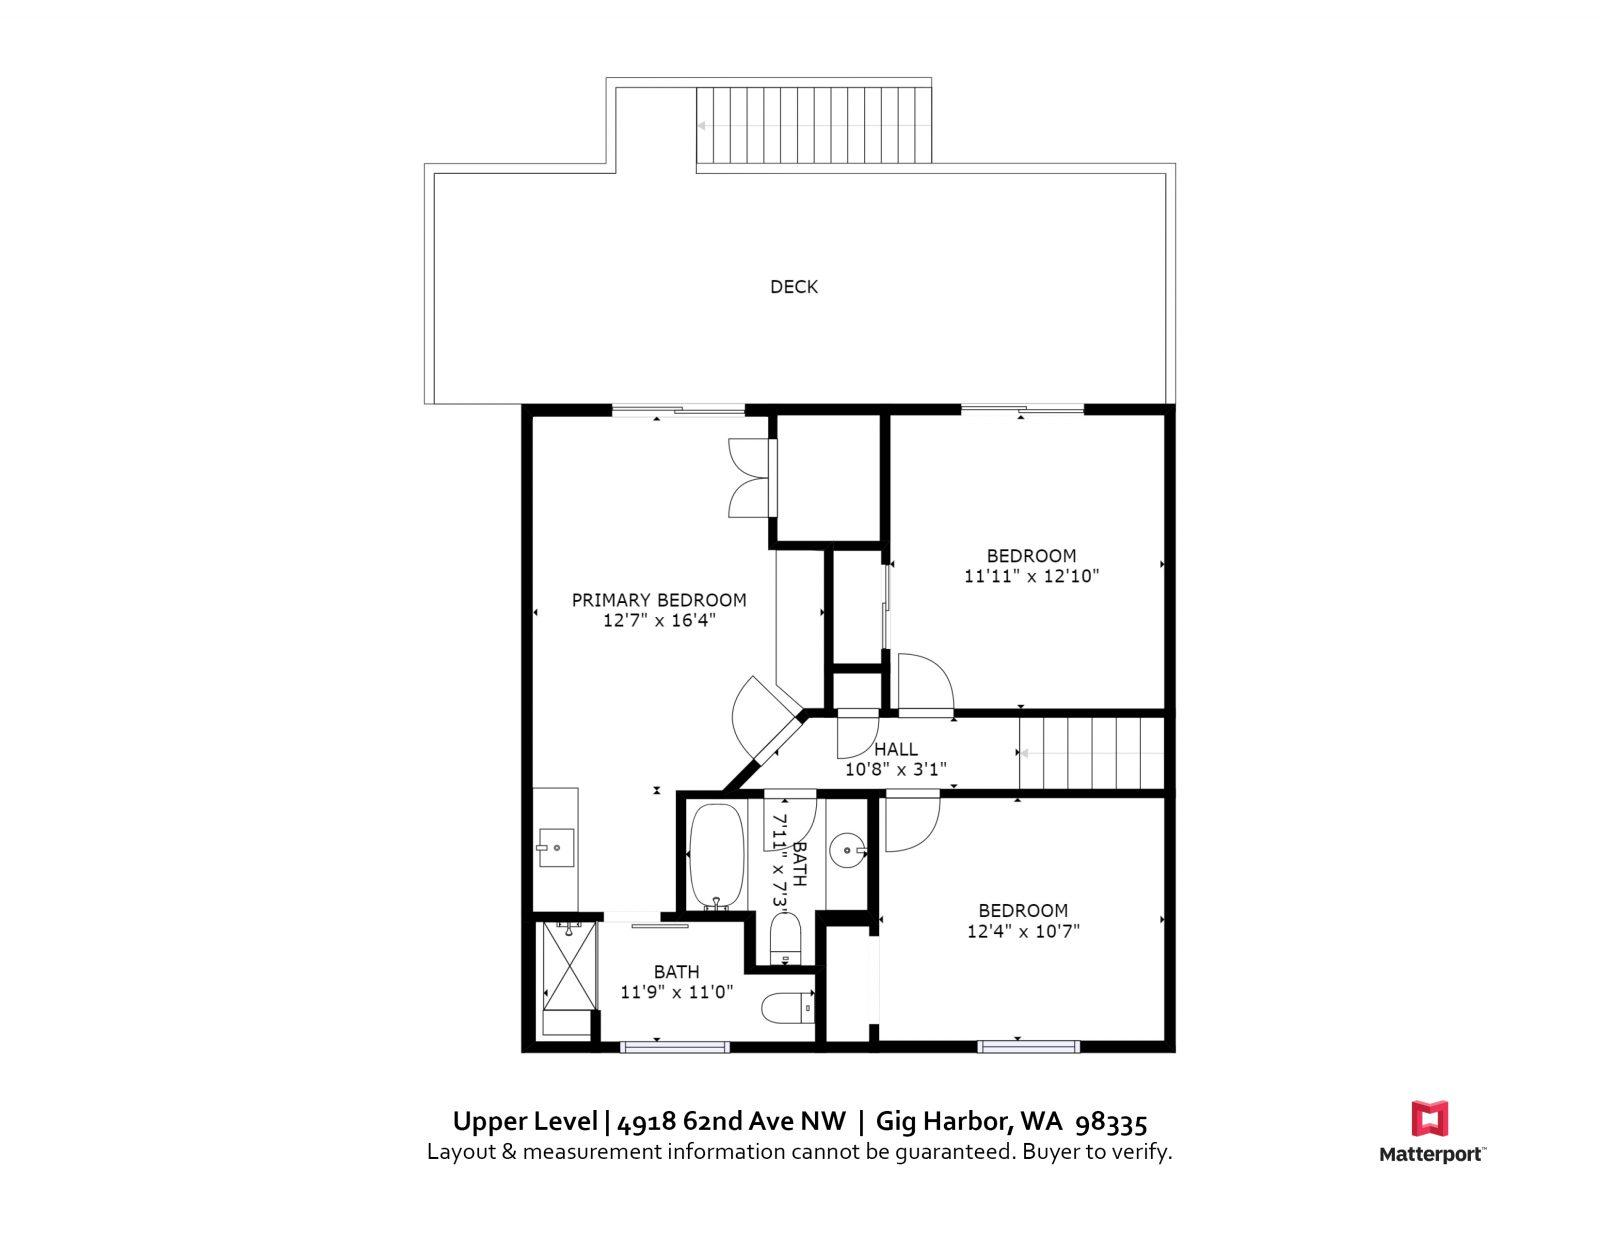 Upper Level   4918 62nd Ave NW